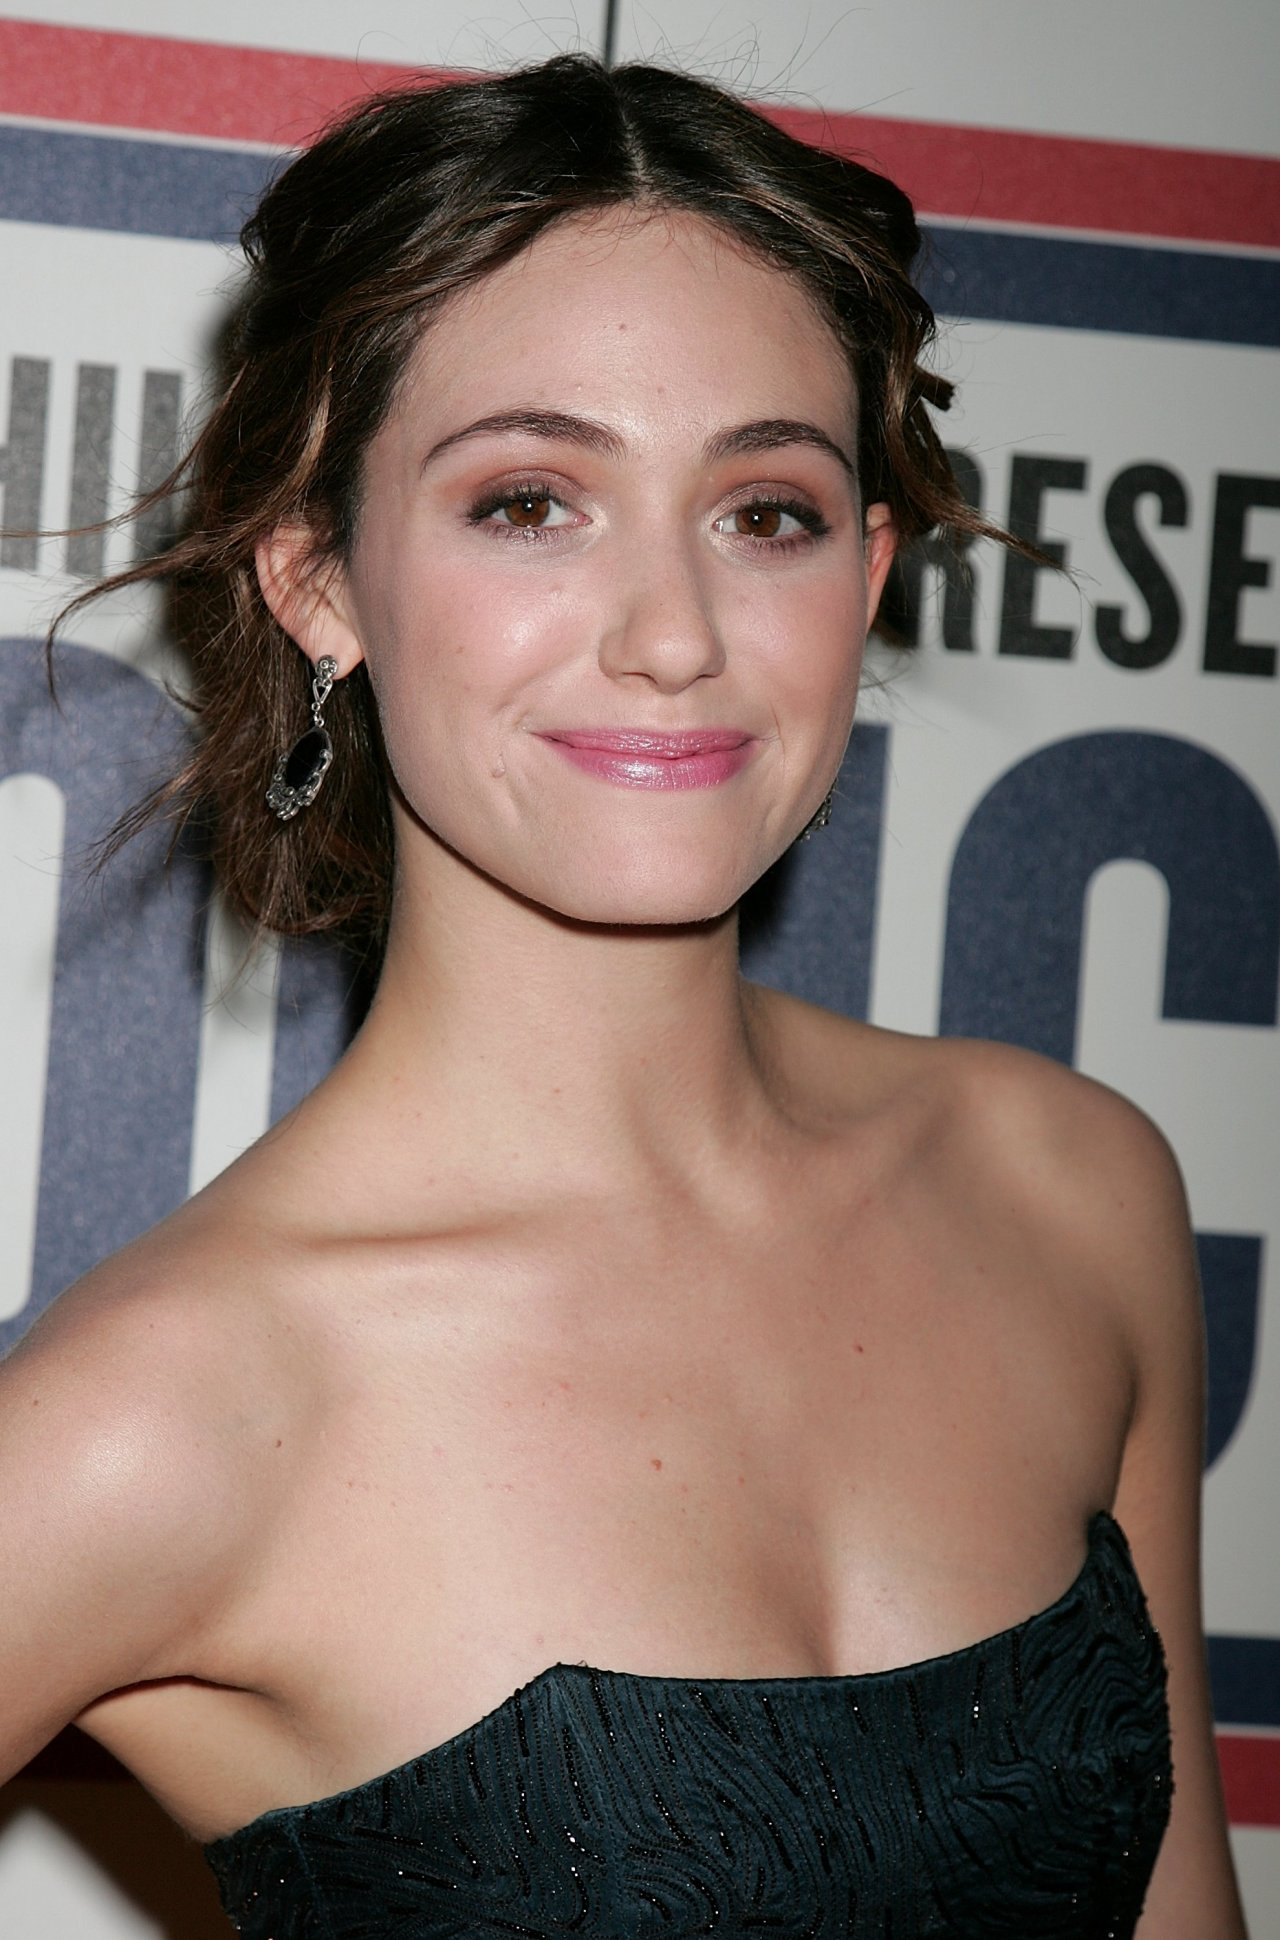 Emmy Rossum leaked wallpapers